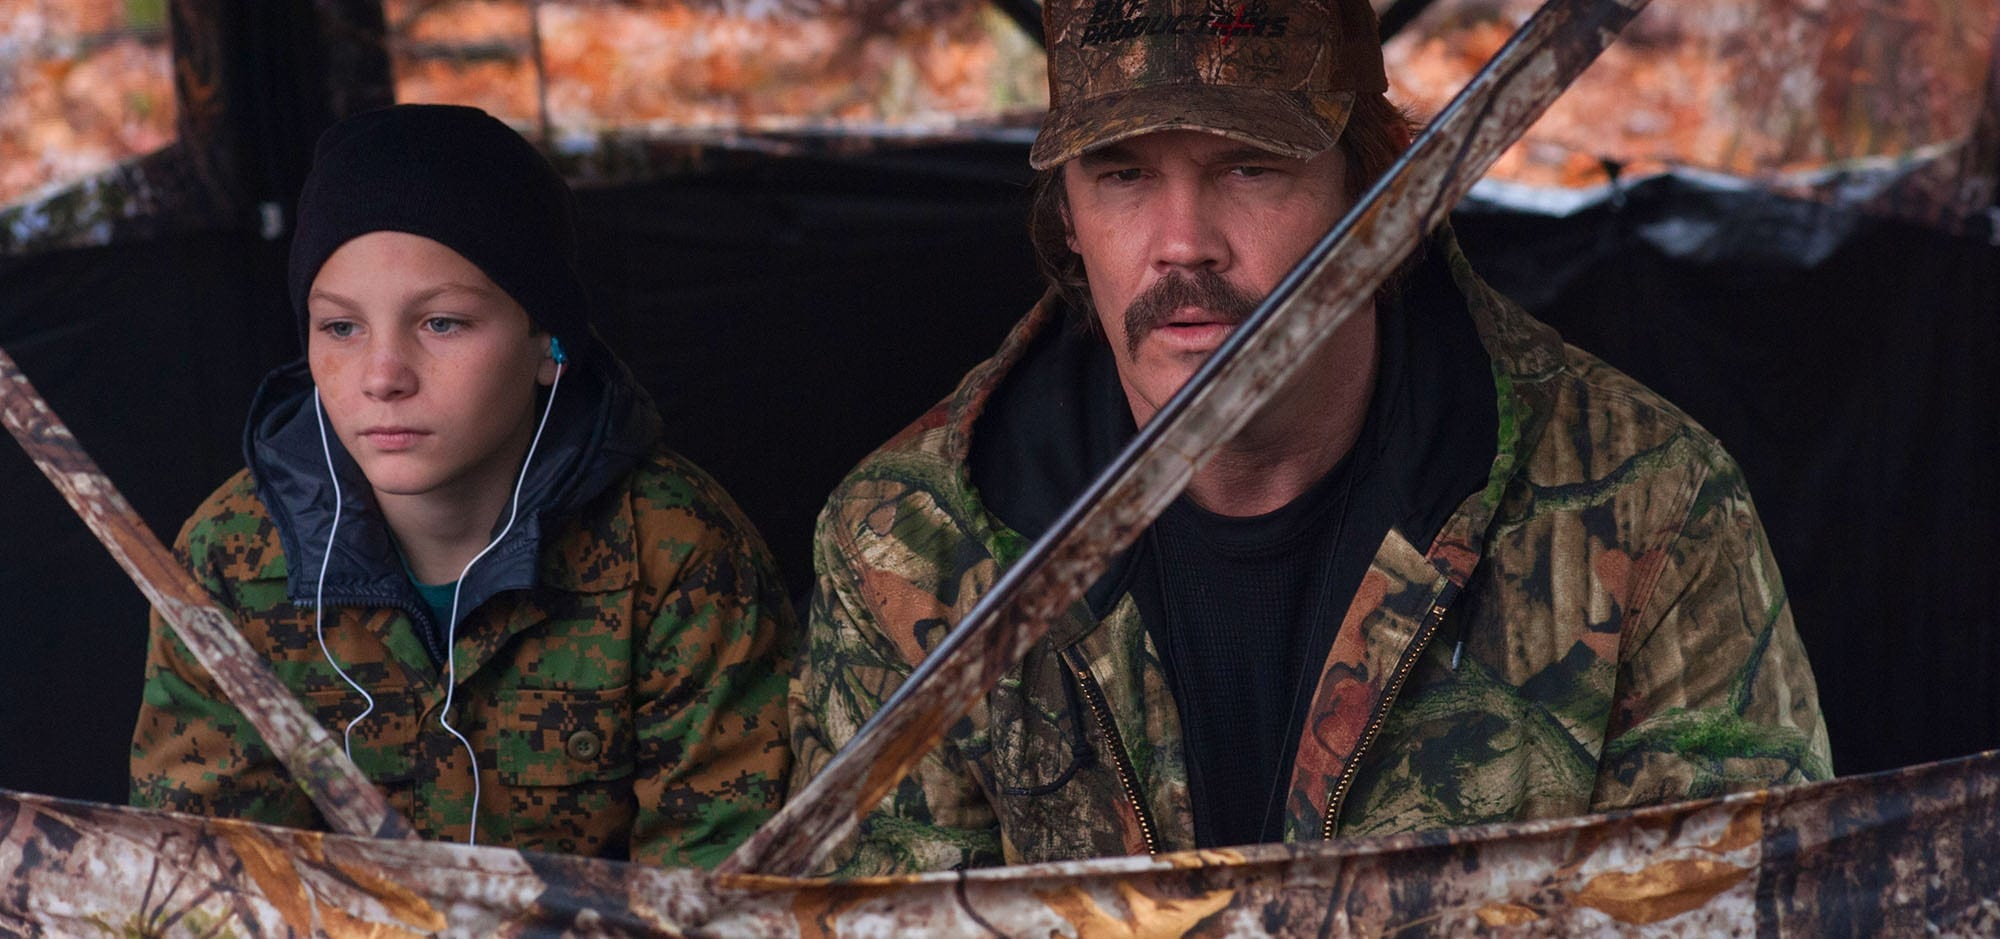 Buck Ferguson plans a special episode of his hunting show around a bonding weekend with his estranged son in 'The Legacy of a Whitetail Deer Hunter'.